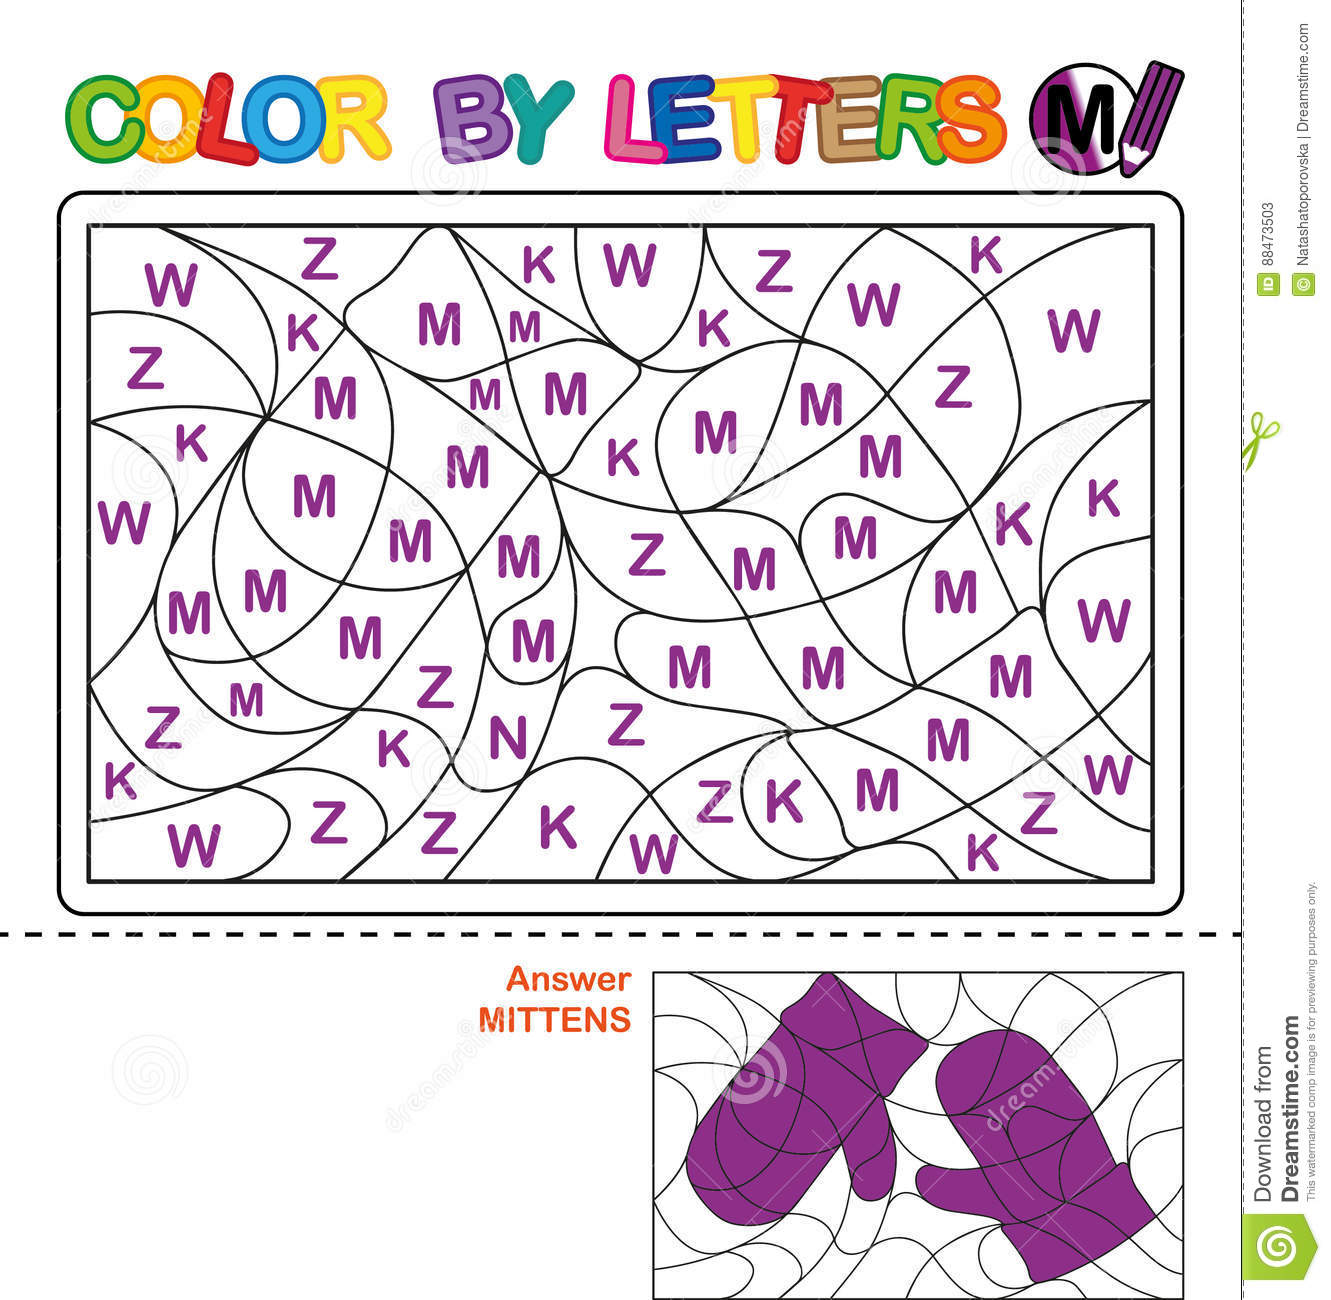 Color By Letter Puzzle For Children Mittens Stock Vector